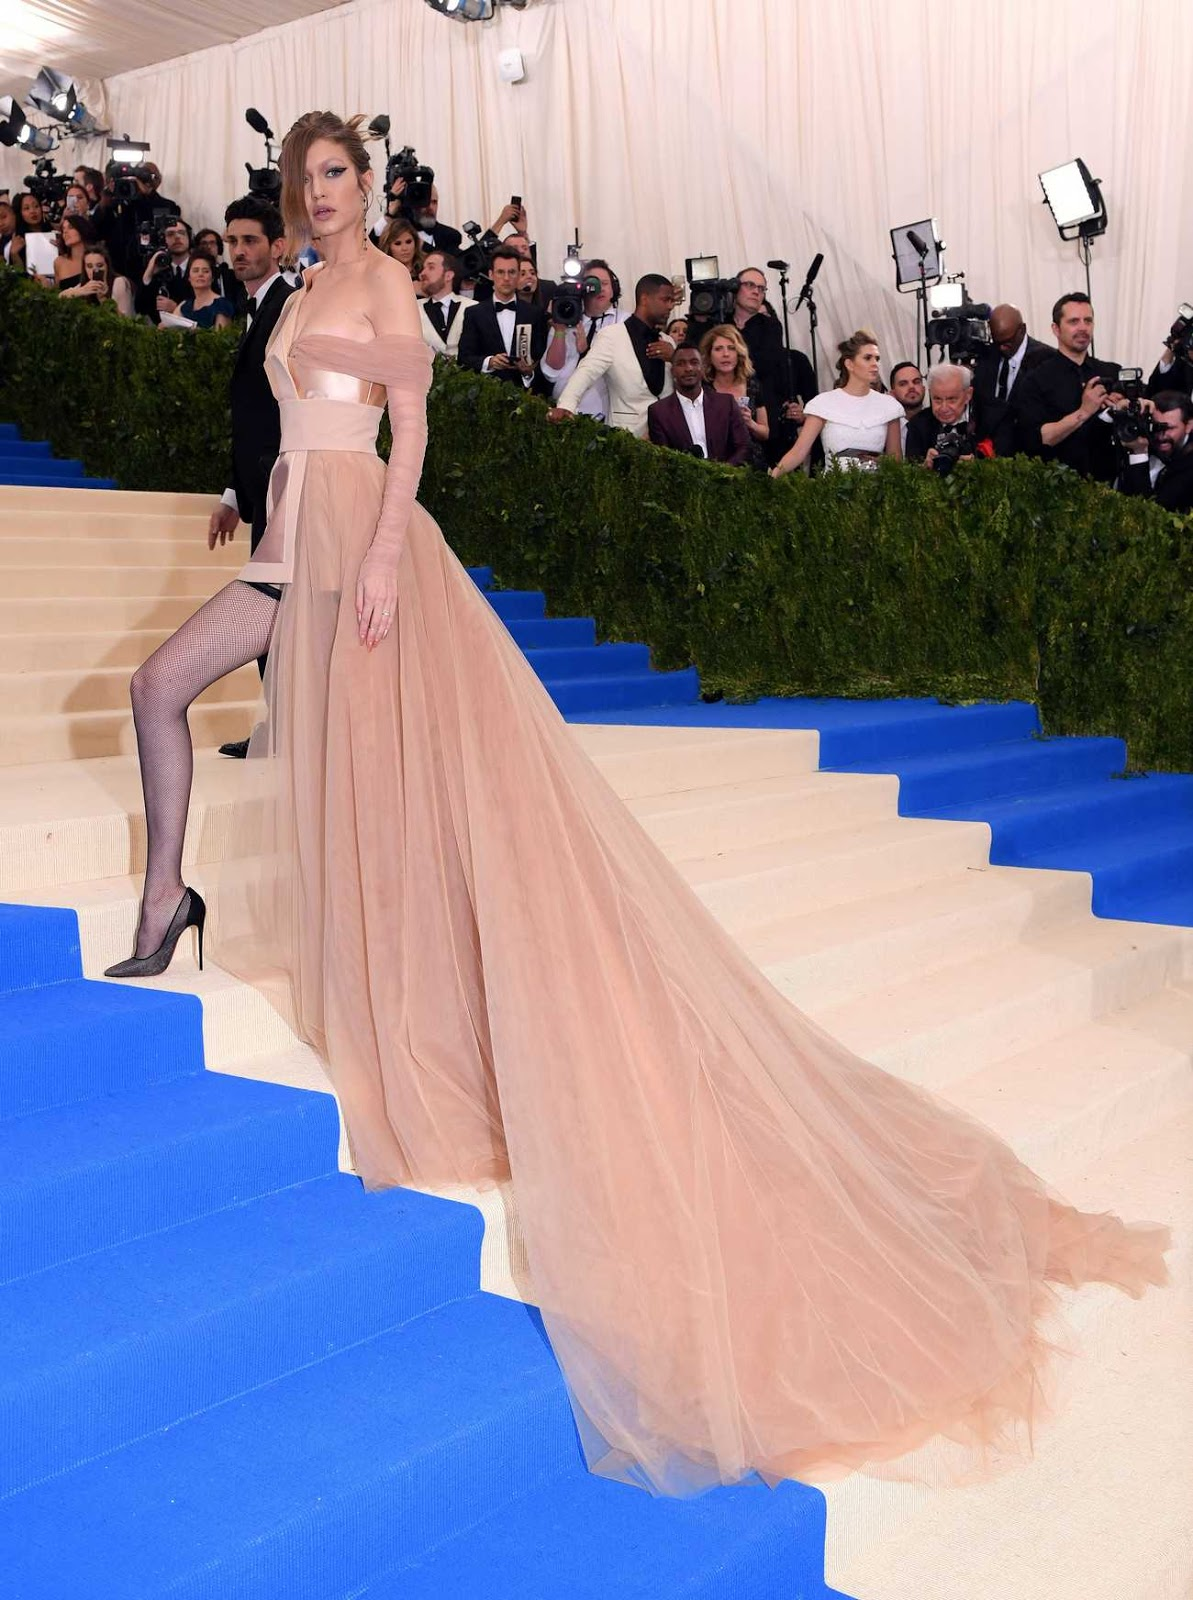 Gigi Hadid turned heads in golden Tommy Hilfiger while attending the Met Gala on Monday